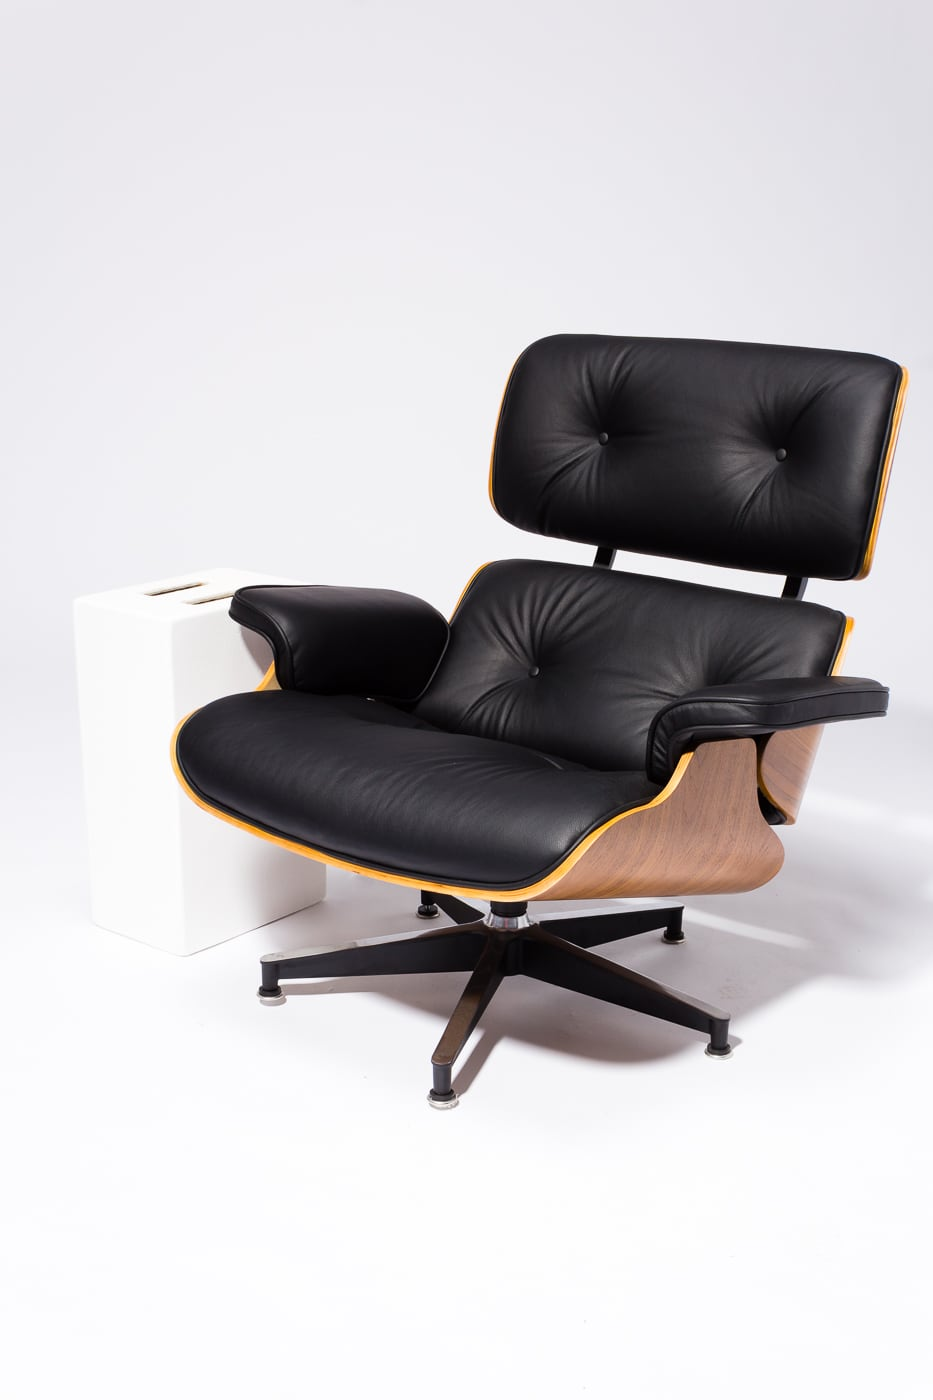 Remarkable Ch587 Black Eames Style Lounge Chair And Ottoman Prop Rental Beatyapartments Chair Design Images Beatyapartmentscom